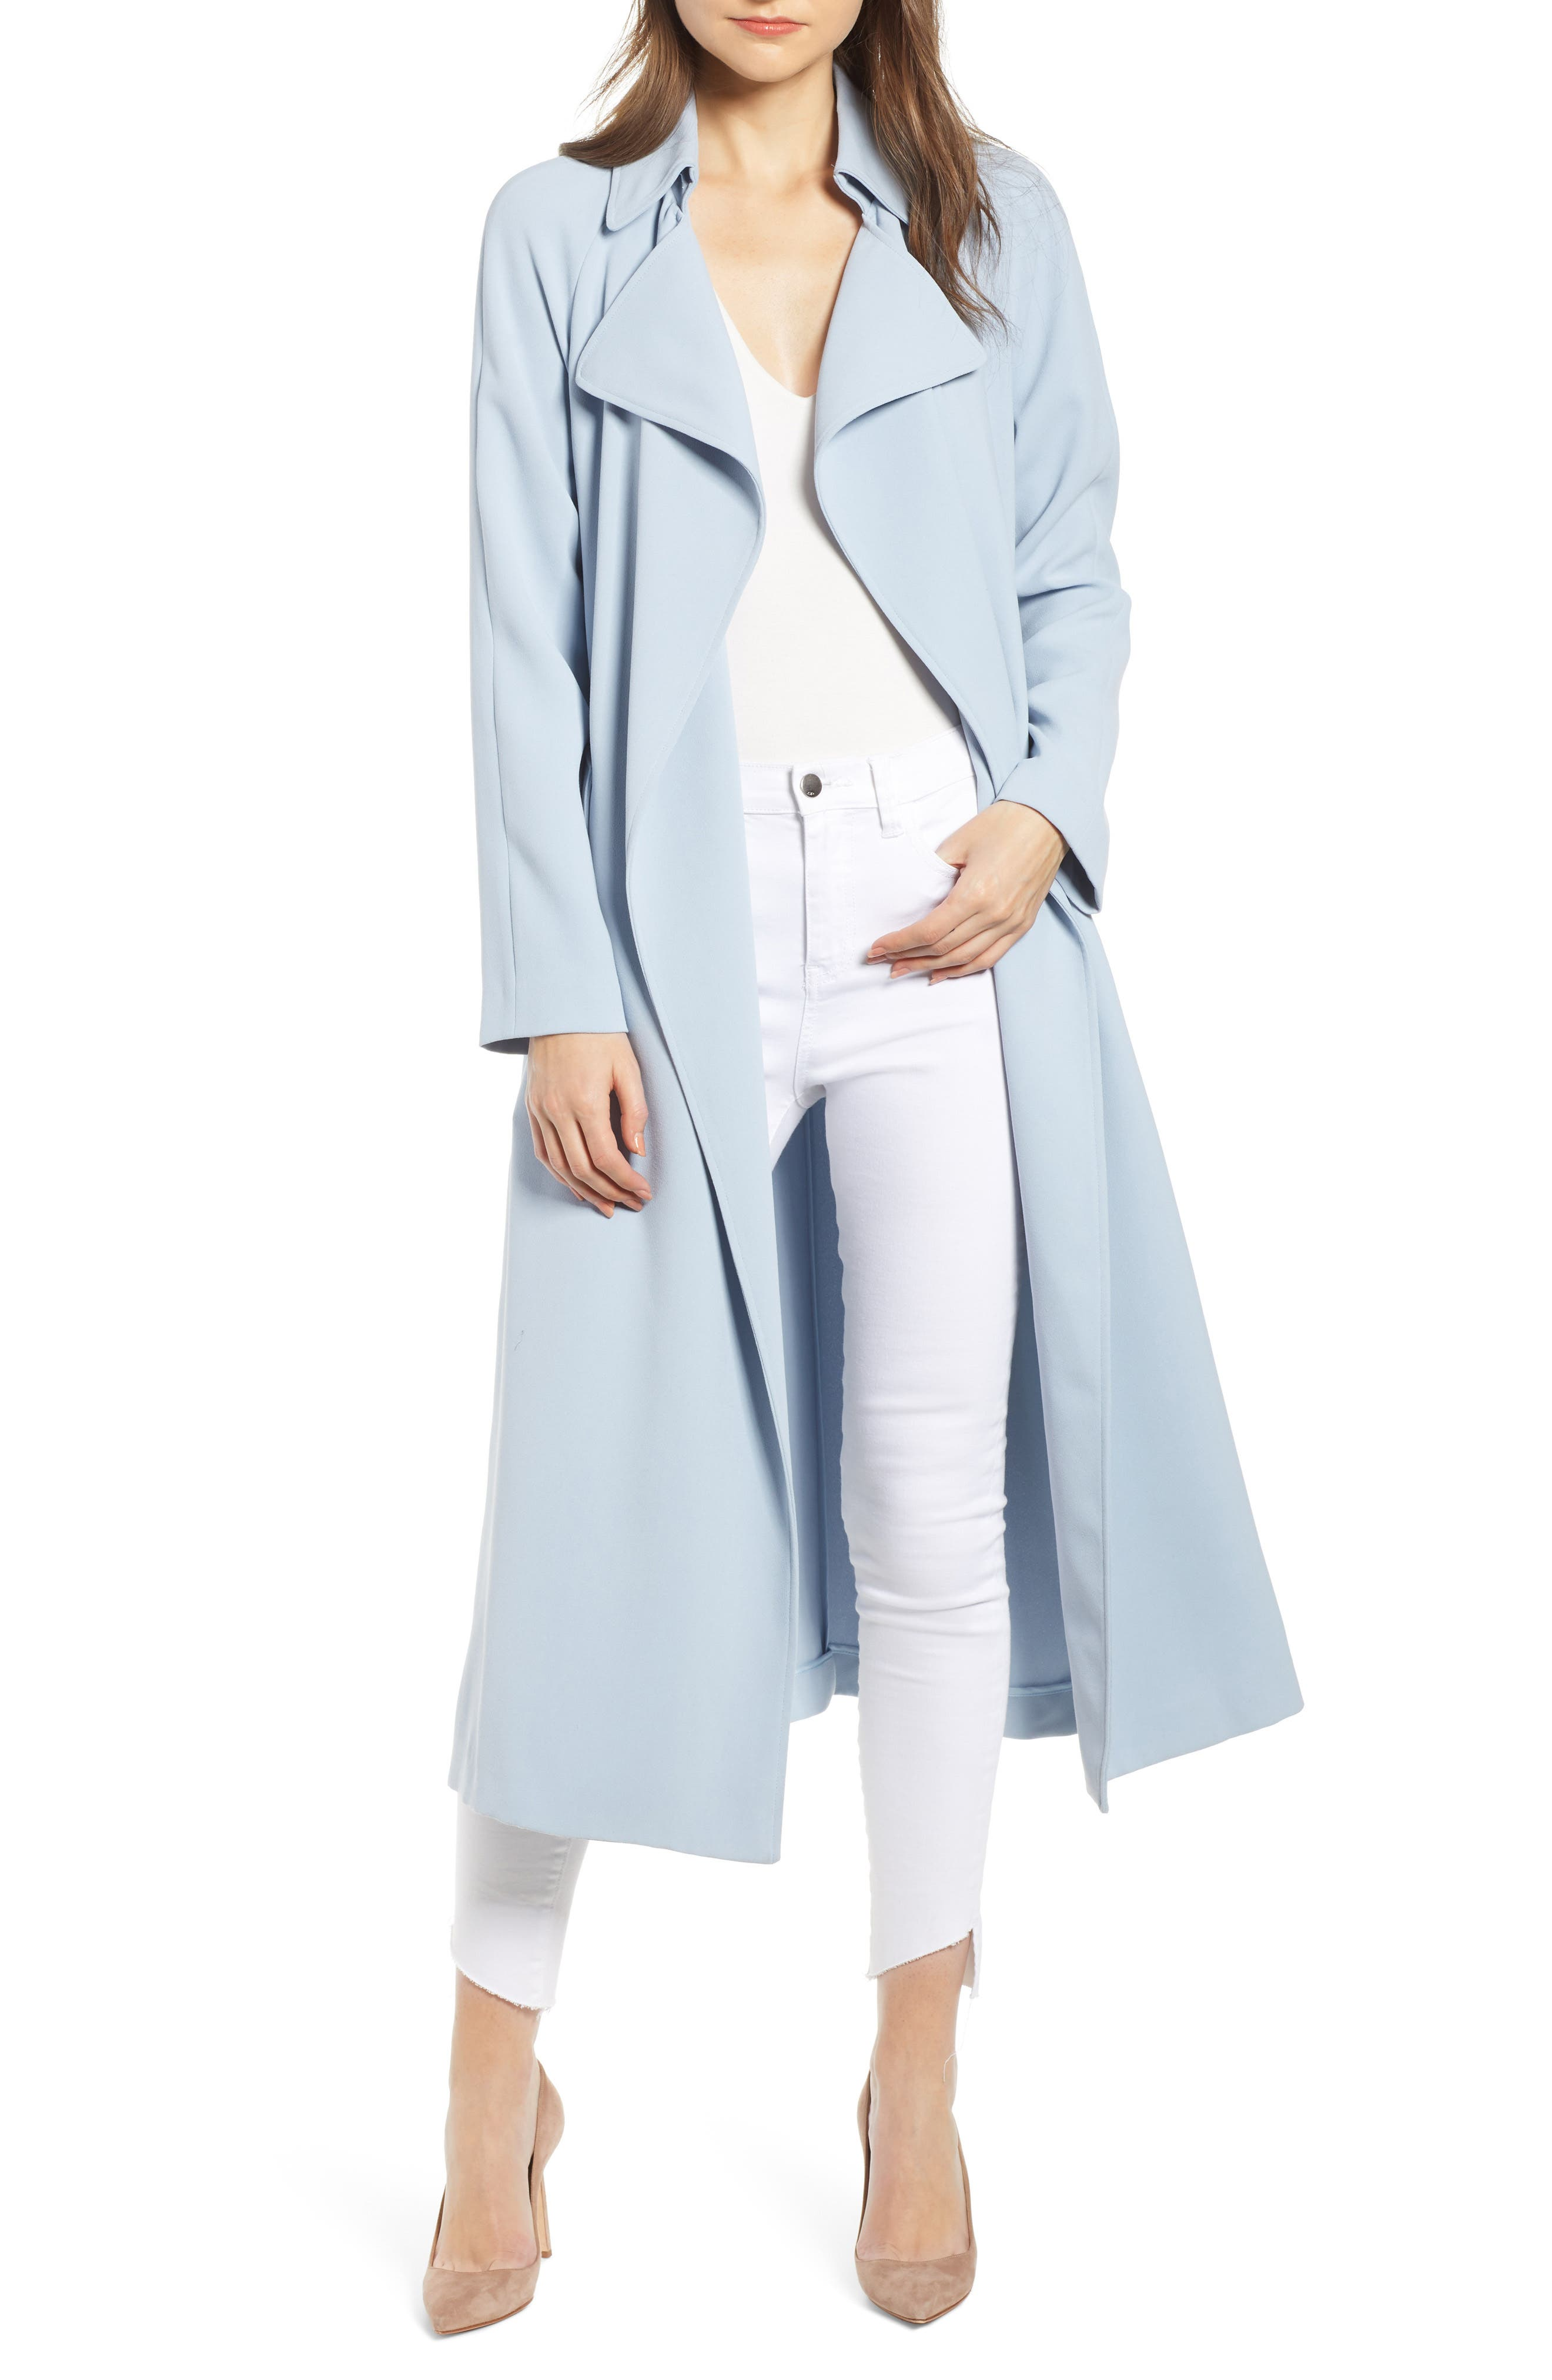 KENDALL KYLIE Womens Long Trench Coat